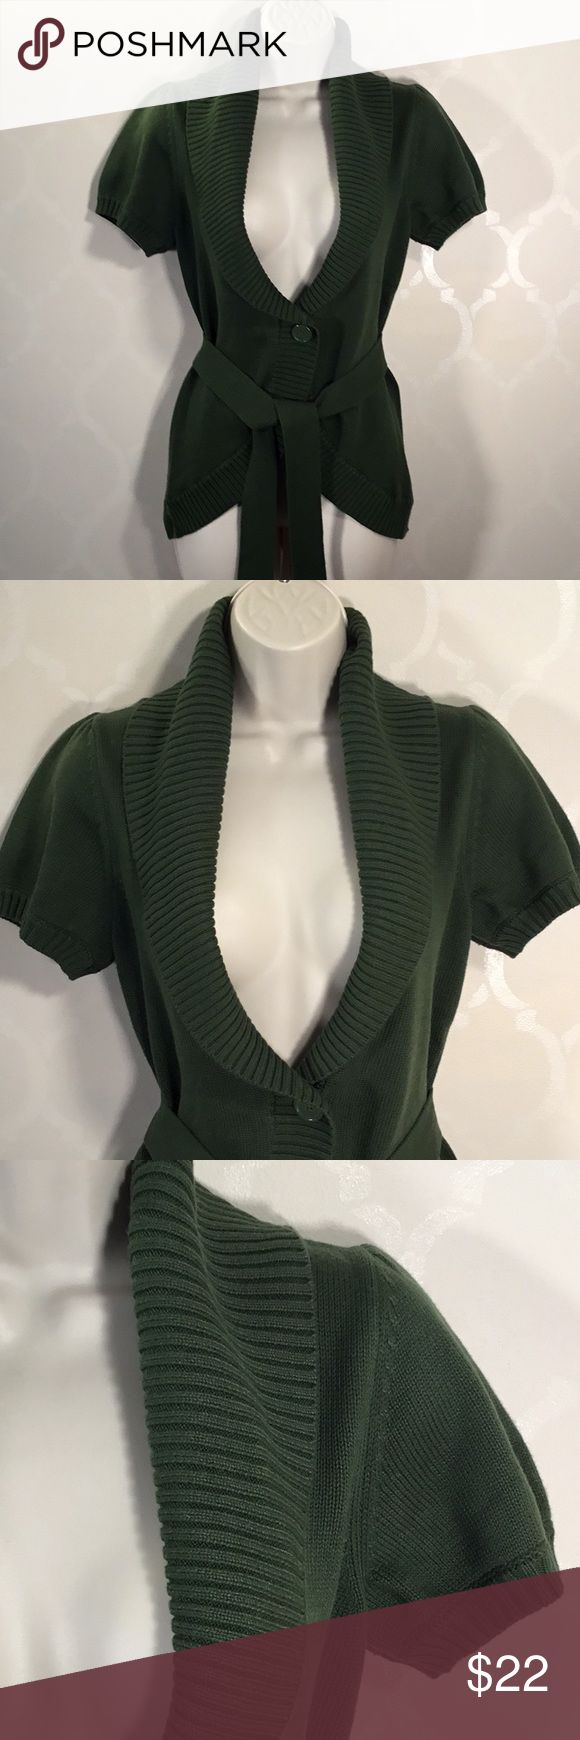 🆕BANANA REPUBLIC OLIVE GREEN CARDIGAN Banana Republic Cardigan ➖ Color is Olive Green! ➖ Front Button ➖ Shawl Collar ➖ Rounded Hemline in Front ➖ Belt is Attached in Back ➖ Small Gathers at top of Short Sleeves Banana Republic Sweaters Cardigans